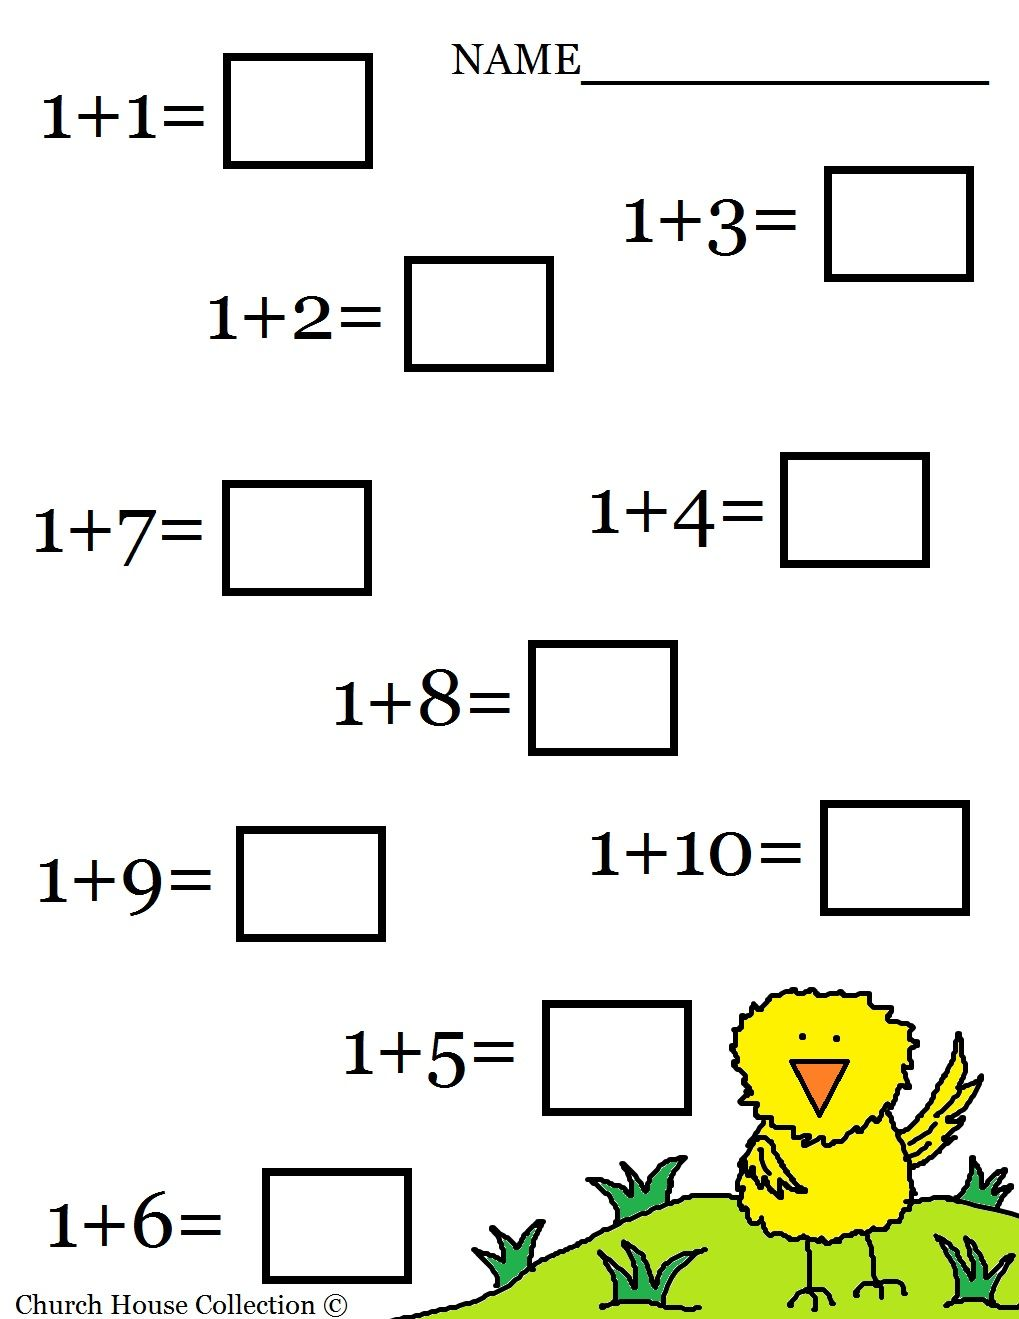 Aldiablosus  Terrific  Images About Worksheets  Math On Pinterest  Math Sheets  With Outstanding  Images About Worksheets  Math On Pinterest  Math Sheets Math Worksheets For Kindergarten And Simple Addition With Enchanting Dissolving Worksheet Also Parable Of The Sower Worksheet In Addition Rd Grade Antonyms Worksheet And Free Printable Language Arts Worksheets For Th Grade As Well As Algebra Revision Worksheet Additionally Shape Symmetry Worksheet From Pinterestcom With Aldiablosus  Outstanding  Images About Worksheets  Math On Pinterest  Math Sheets  With Enchanting  Images About Worksheets  Math On Pinterest  Math Sheets Math Worksheets For Kindergarten And Simple Addition And Terrific Dissolving Worksheet Also Parable Of The Sower Worksheet In Addition Rd Grade Antonyms Worksheet From Pinterestcom